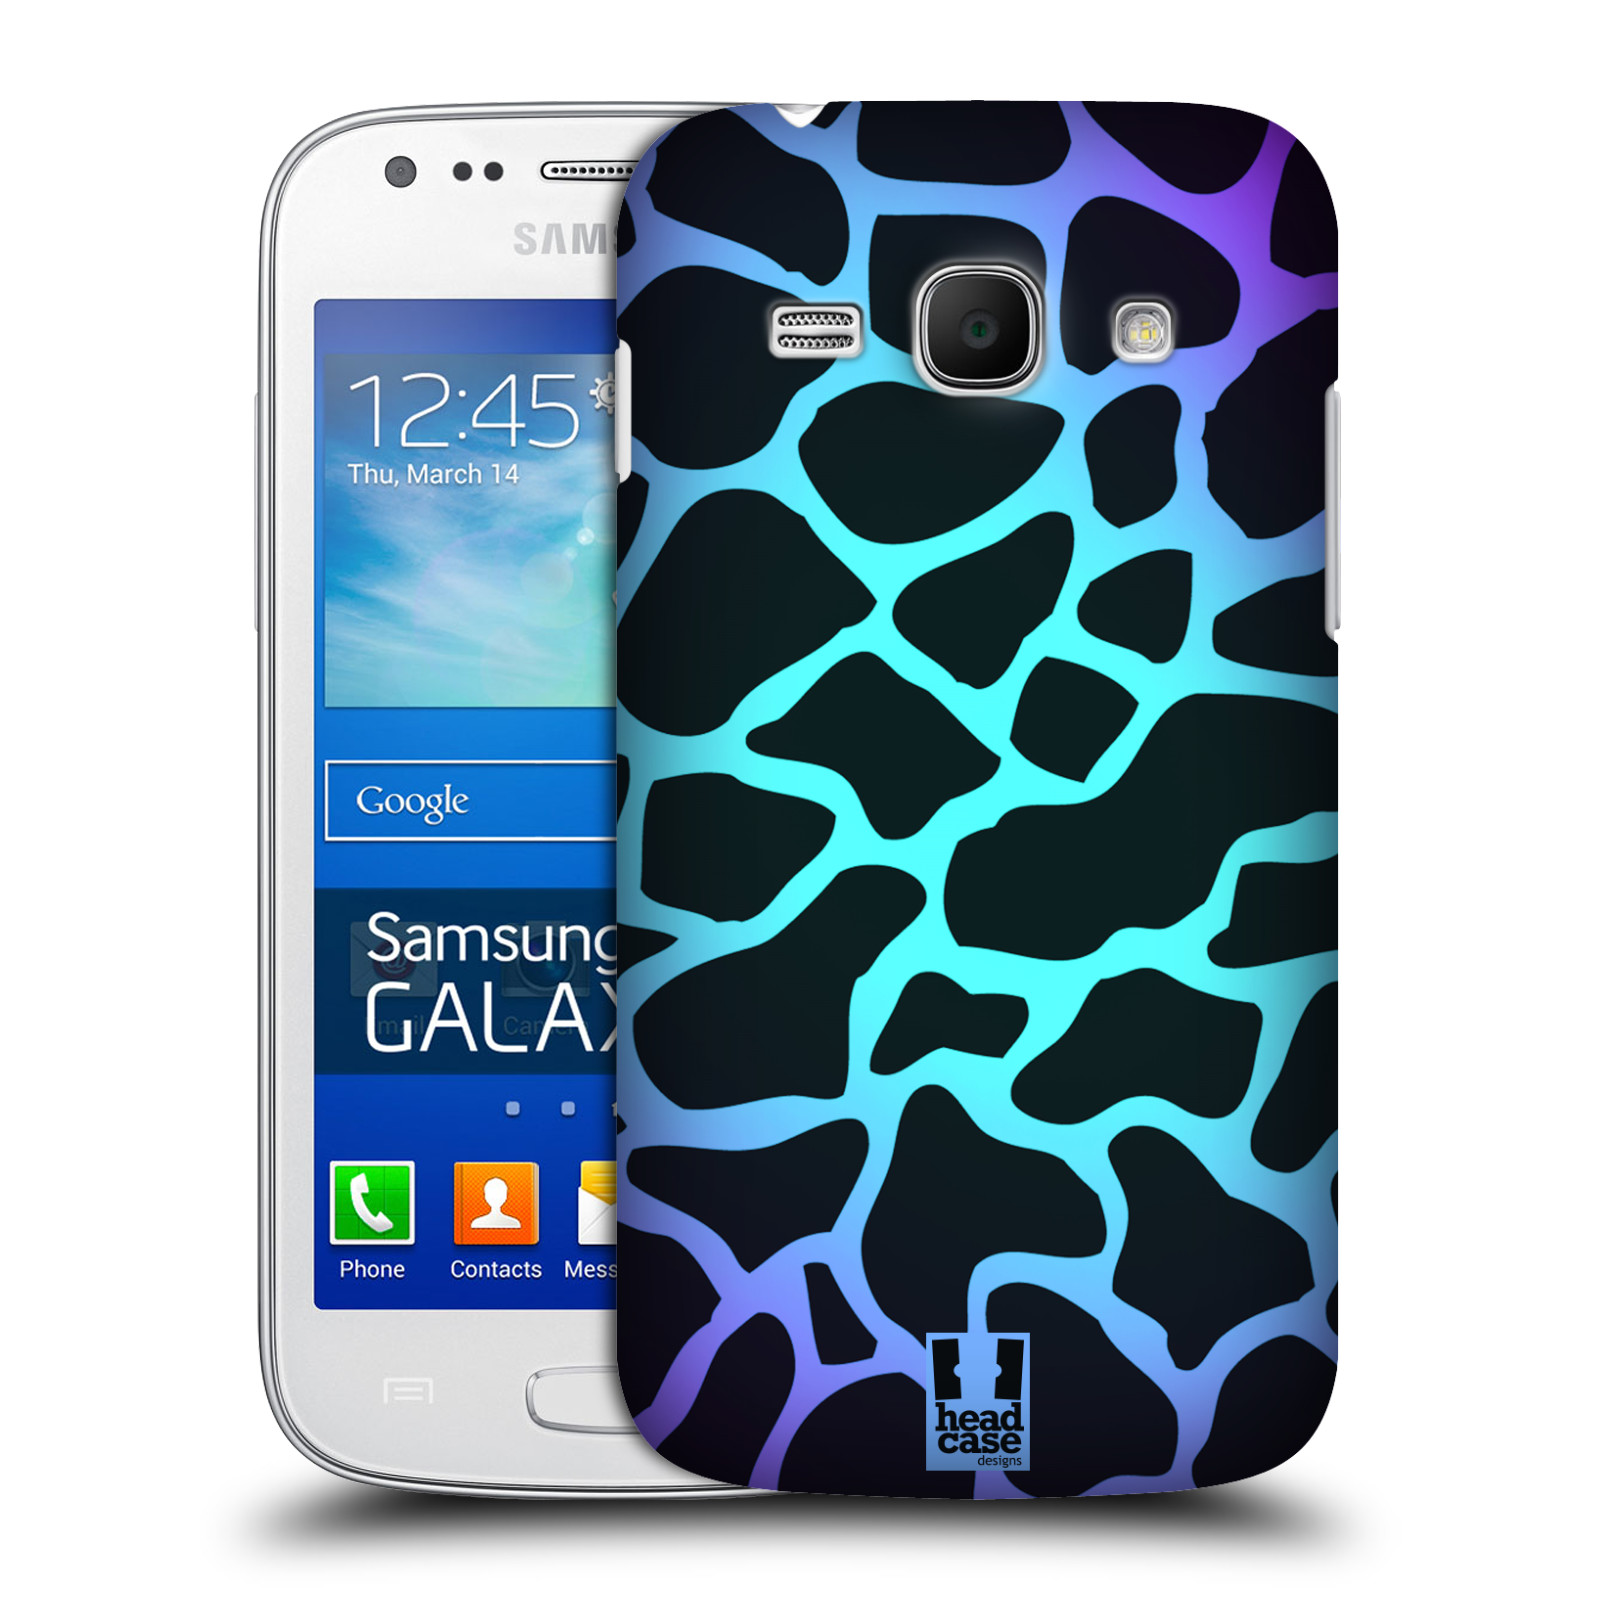 HEAD CASE DESIGNS MAD PRINT CASE COVER FOR SAMSUNG GALAXY ACE 3 S7270 ...